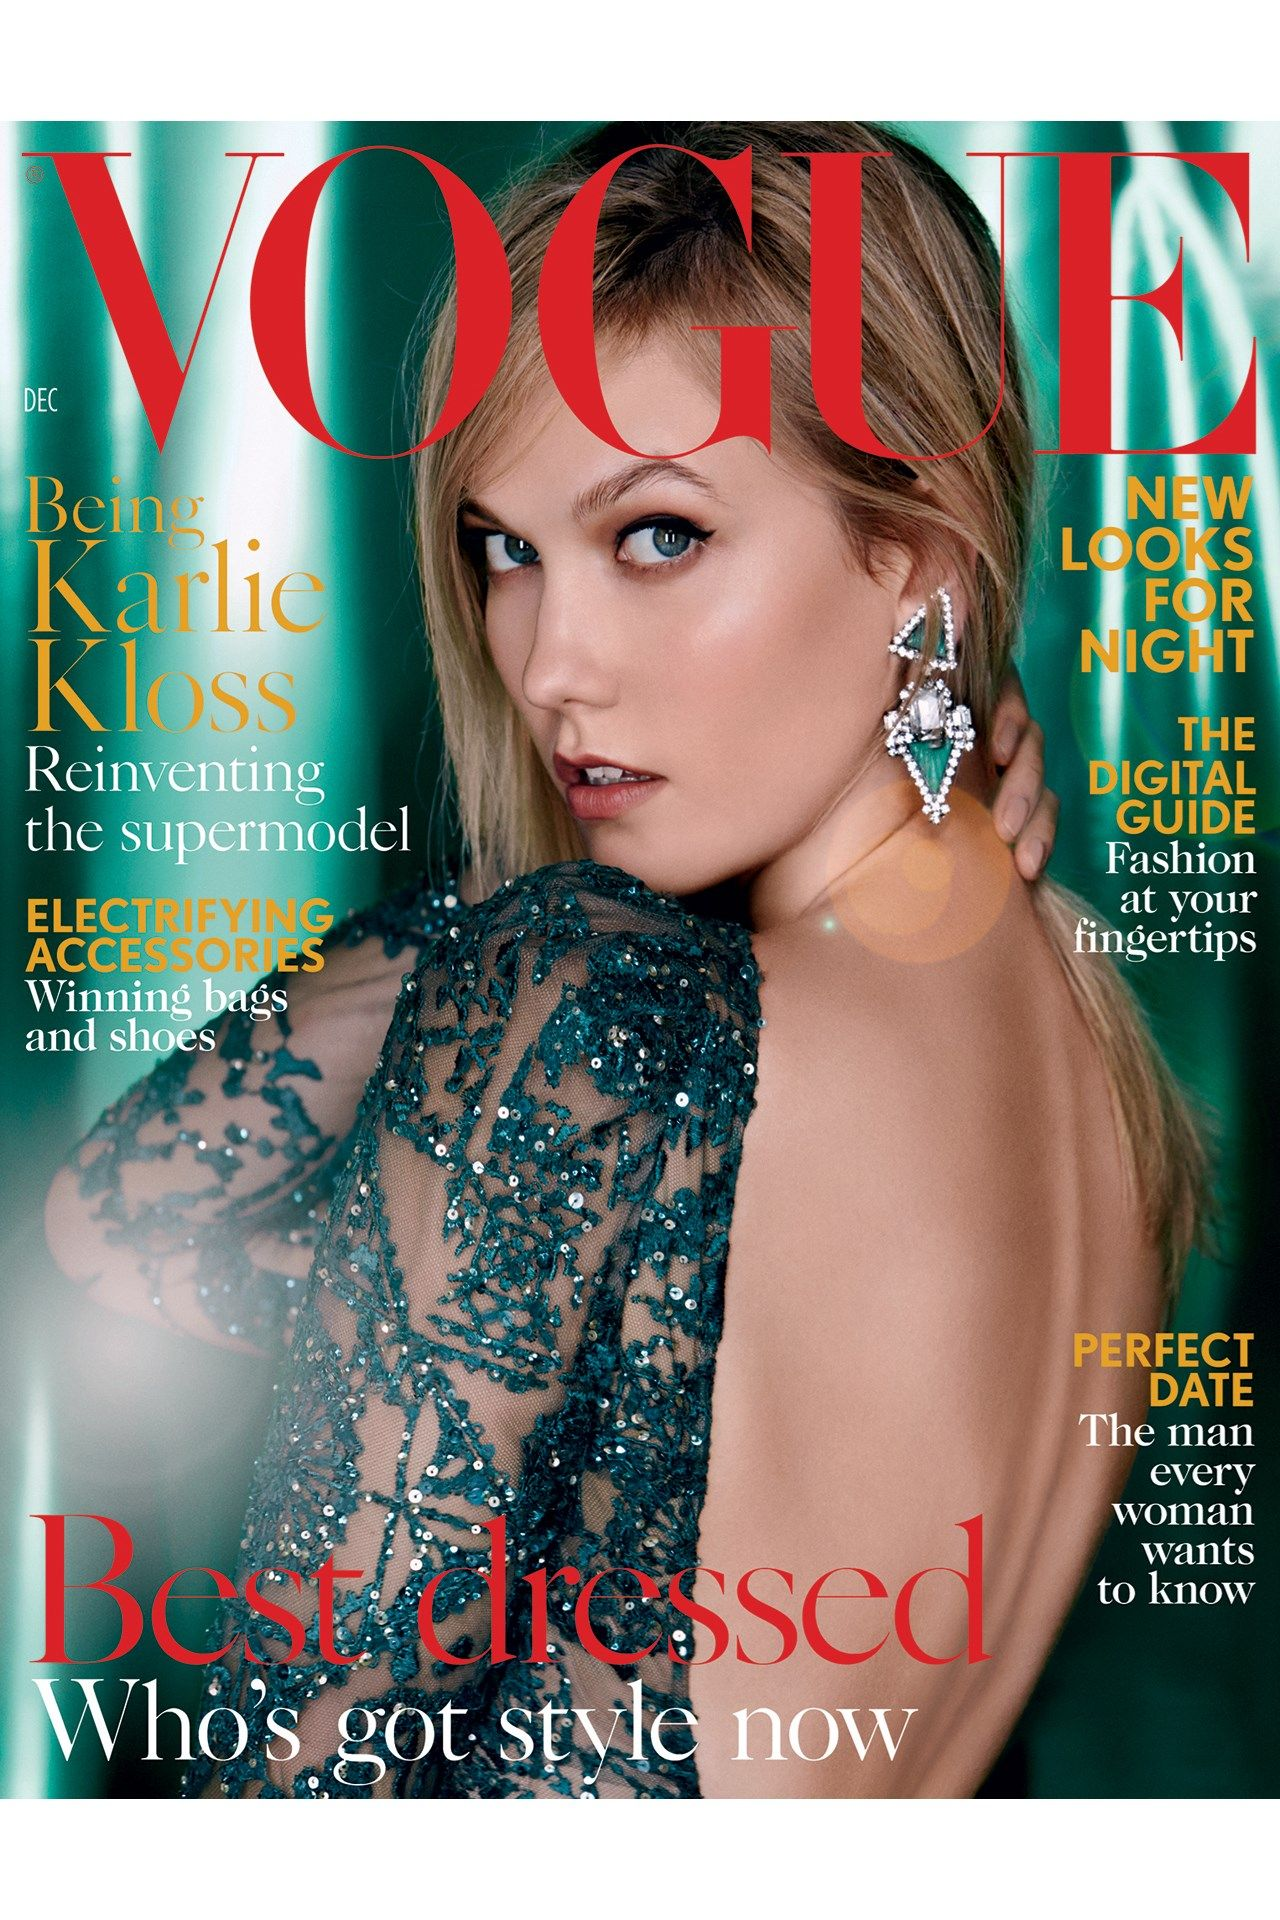 Karlie Kloss by Patrick Demarchelier for Vogue UK December 2015 cover